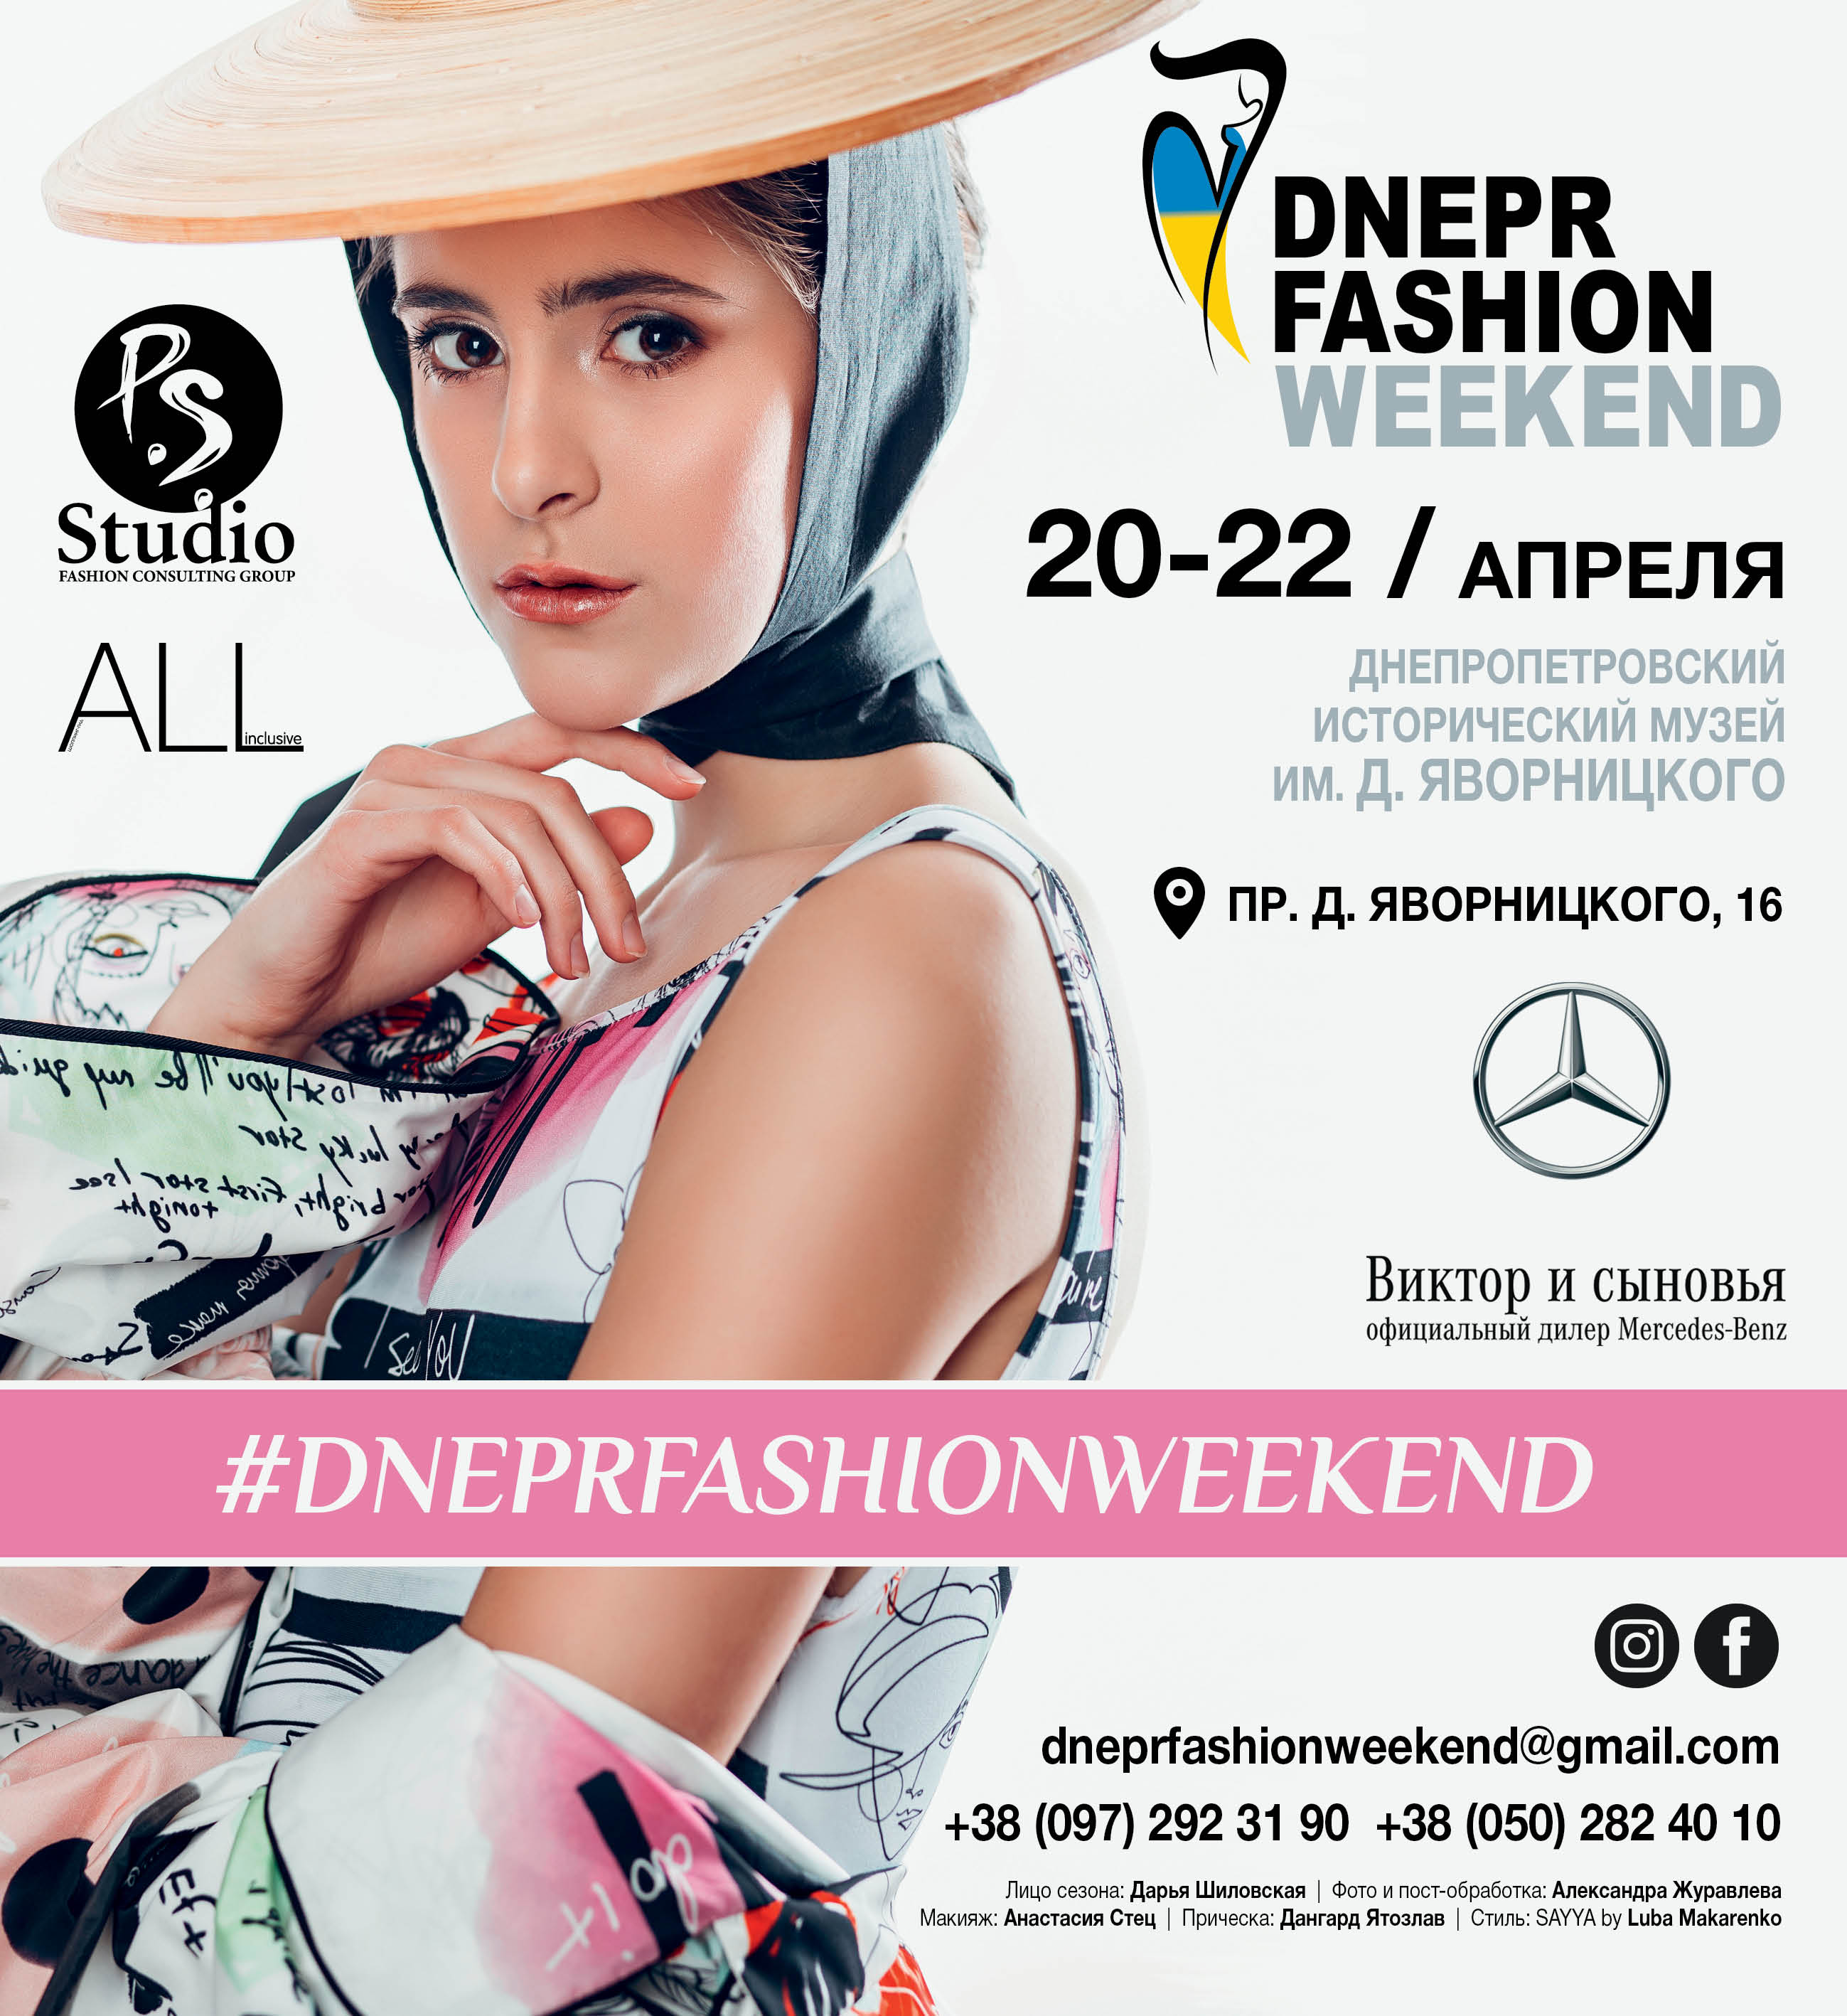 Dnepr Fashion Weekend 20 22 апреля 2 - Новый сезон Dnepr Fashion Weekend